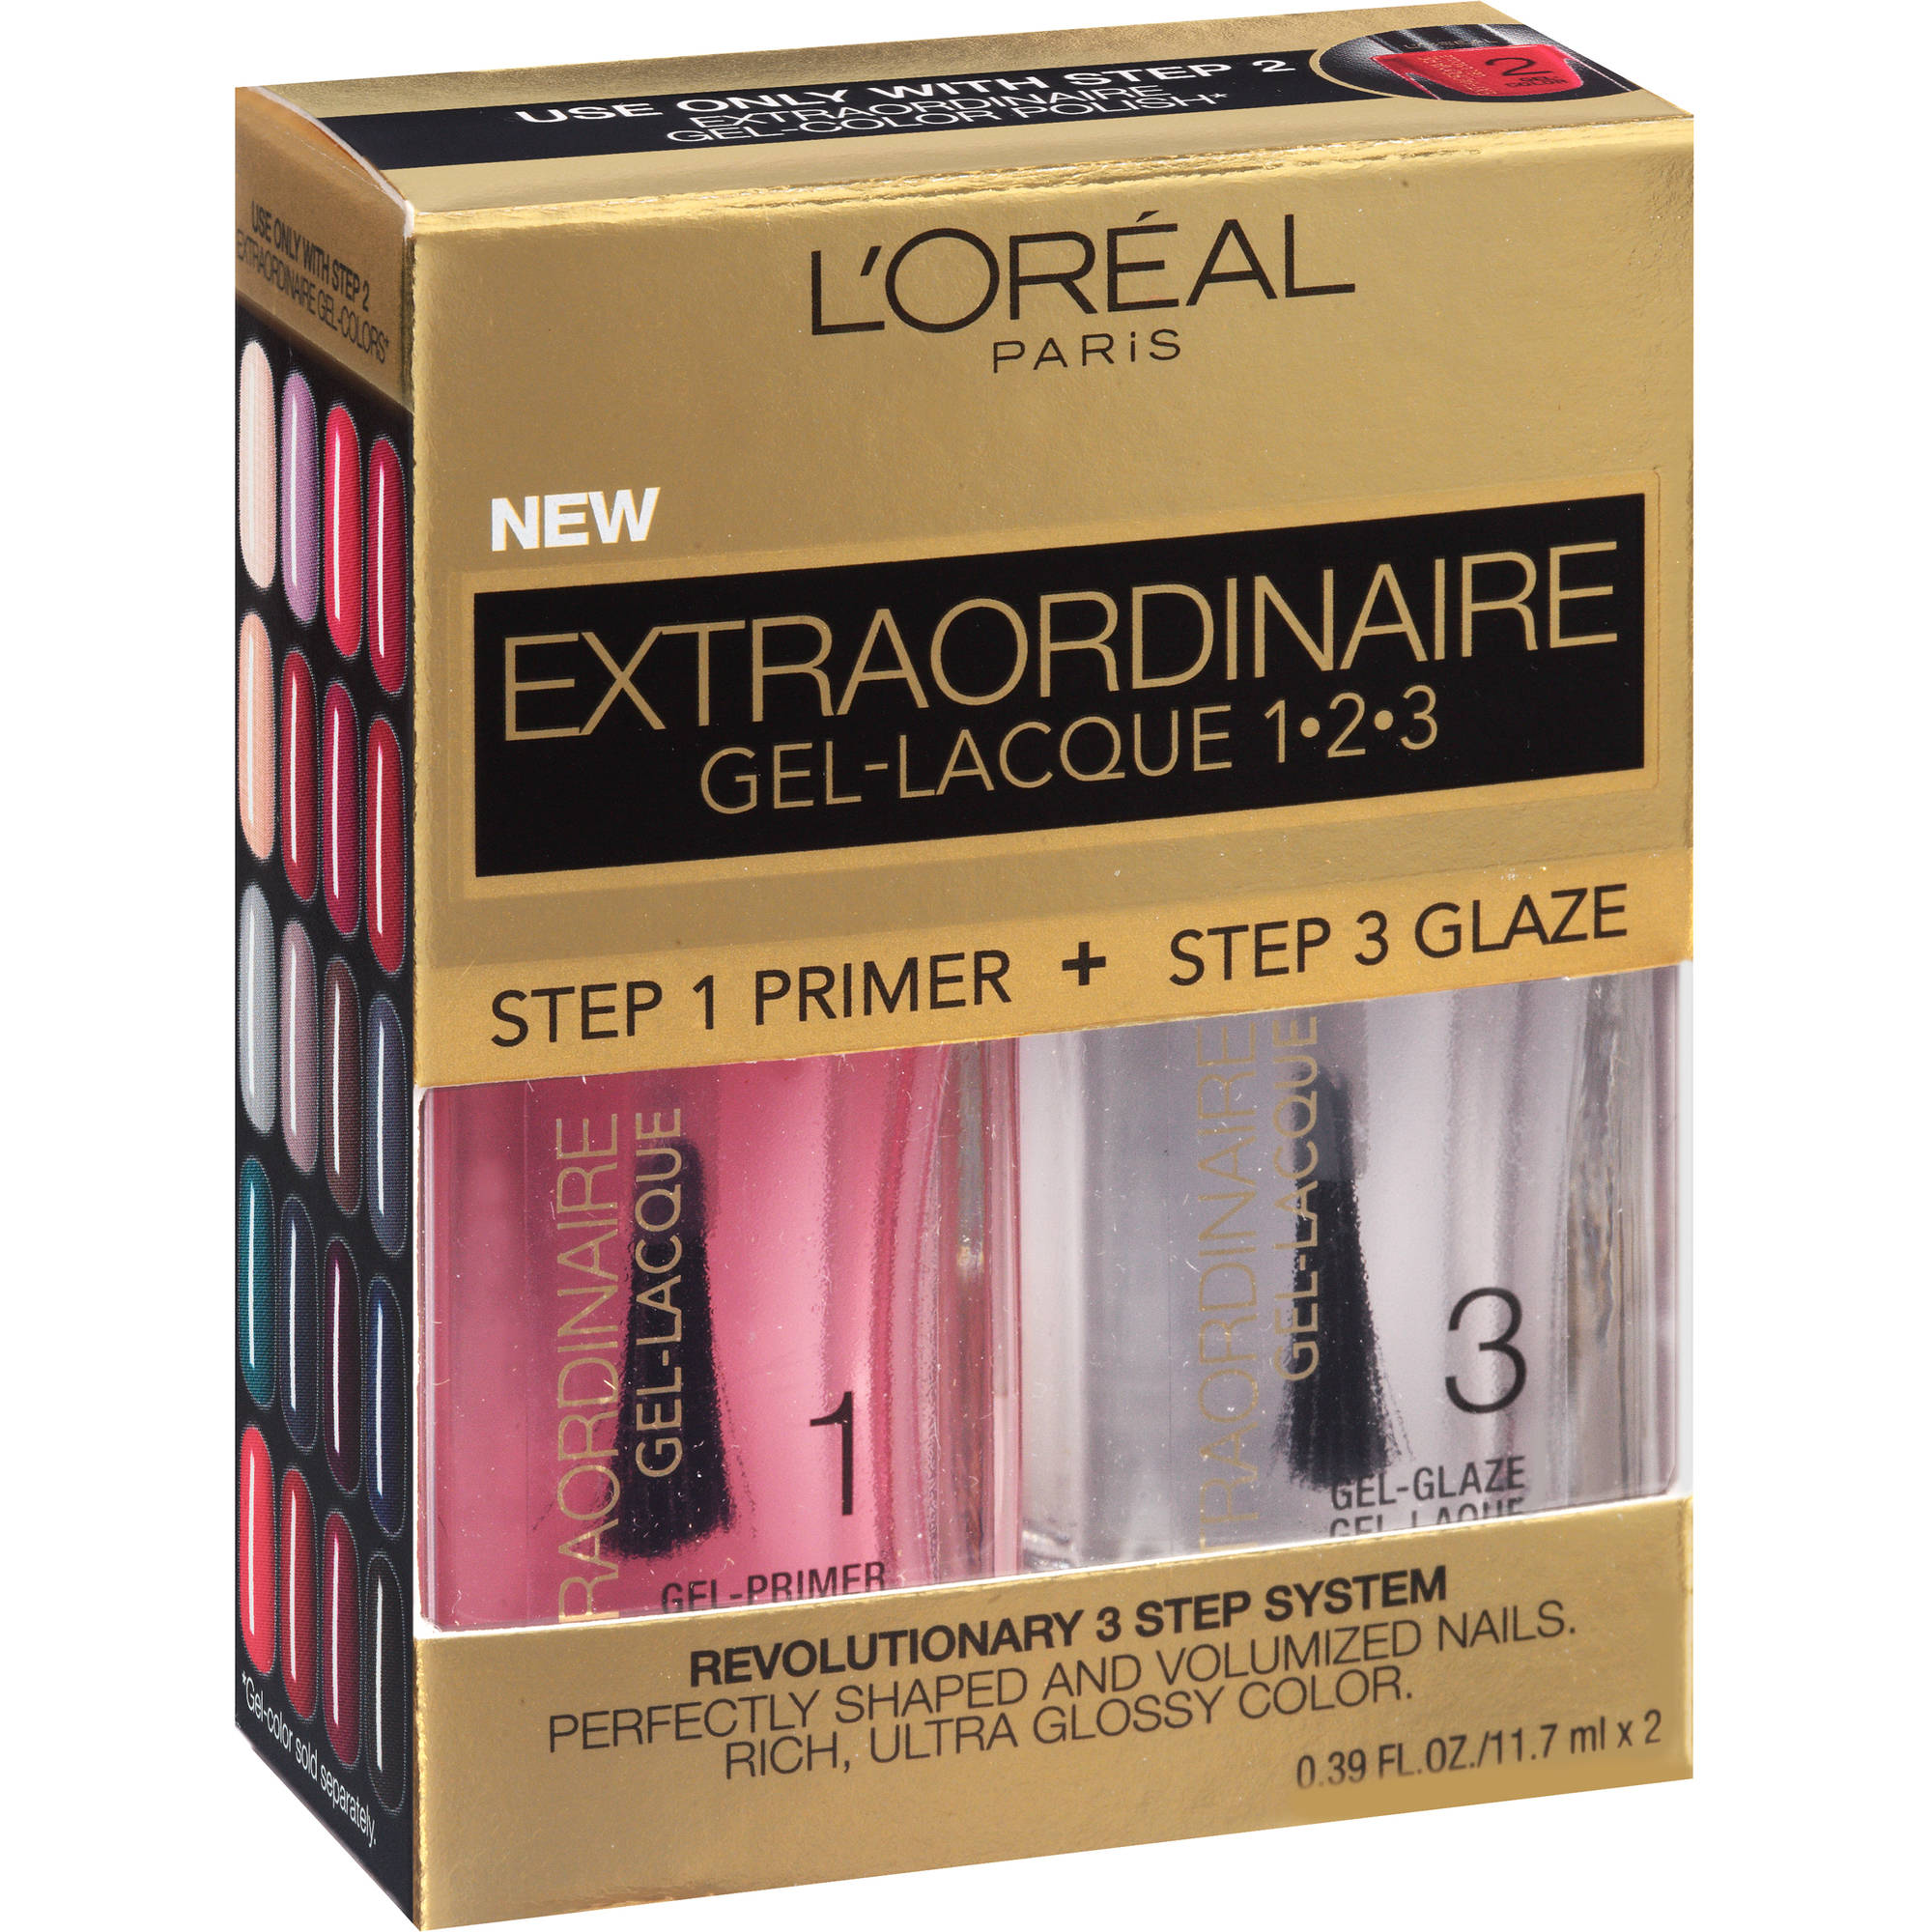 Loreal Extraordinaire Gel Lacque 1 2 3 Nail Kit 0 78 Oz